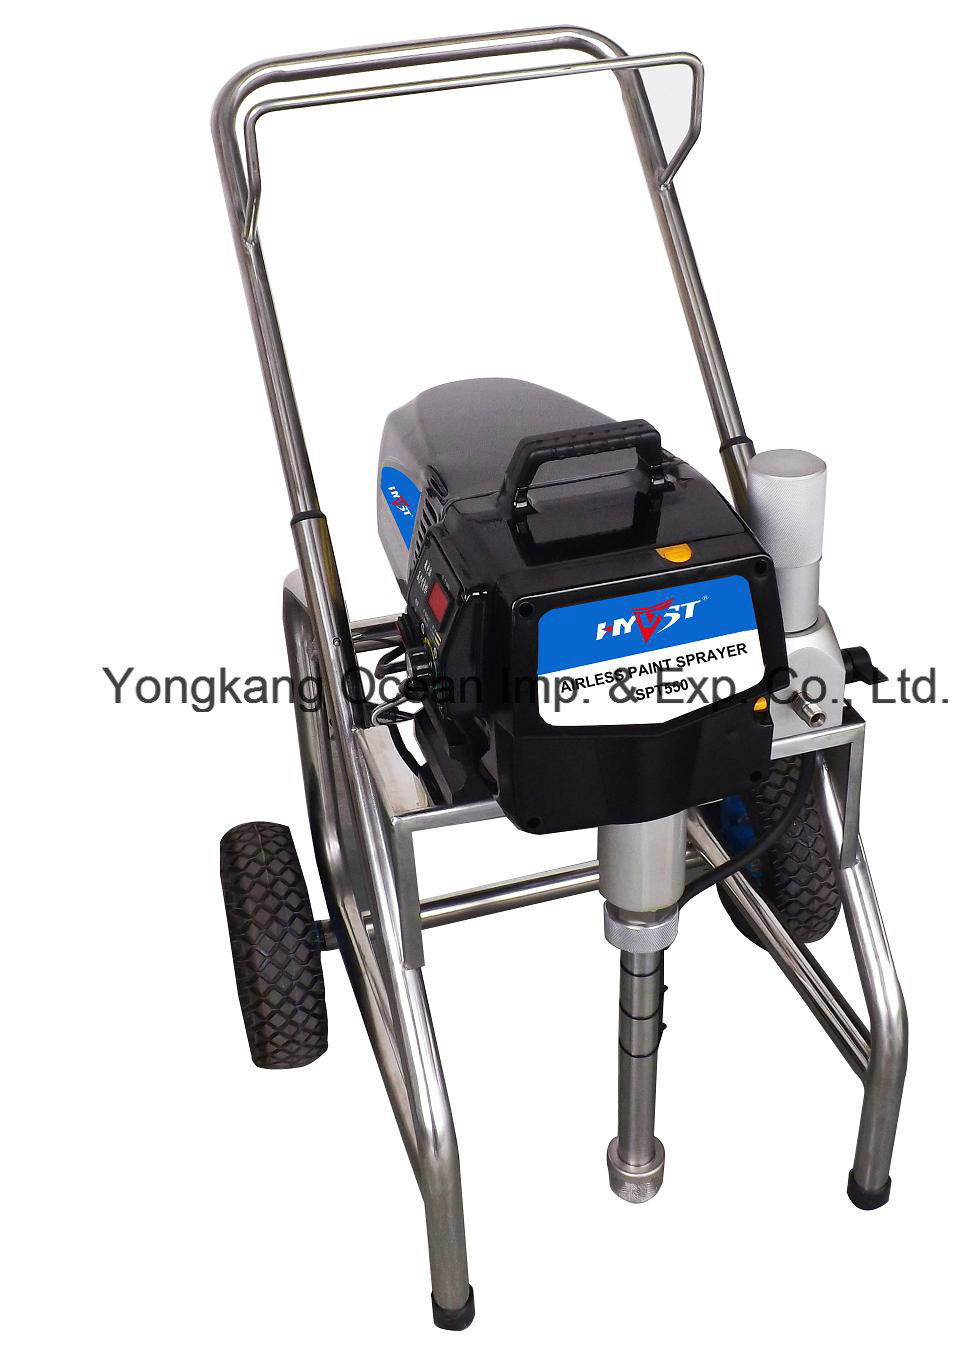 Hyvst Electric High Pressure Airless Paint Sprayer Spt550